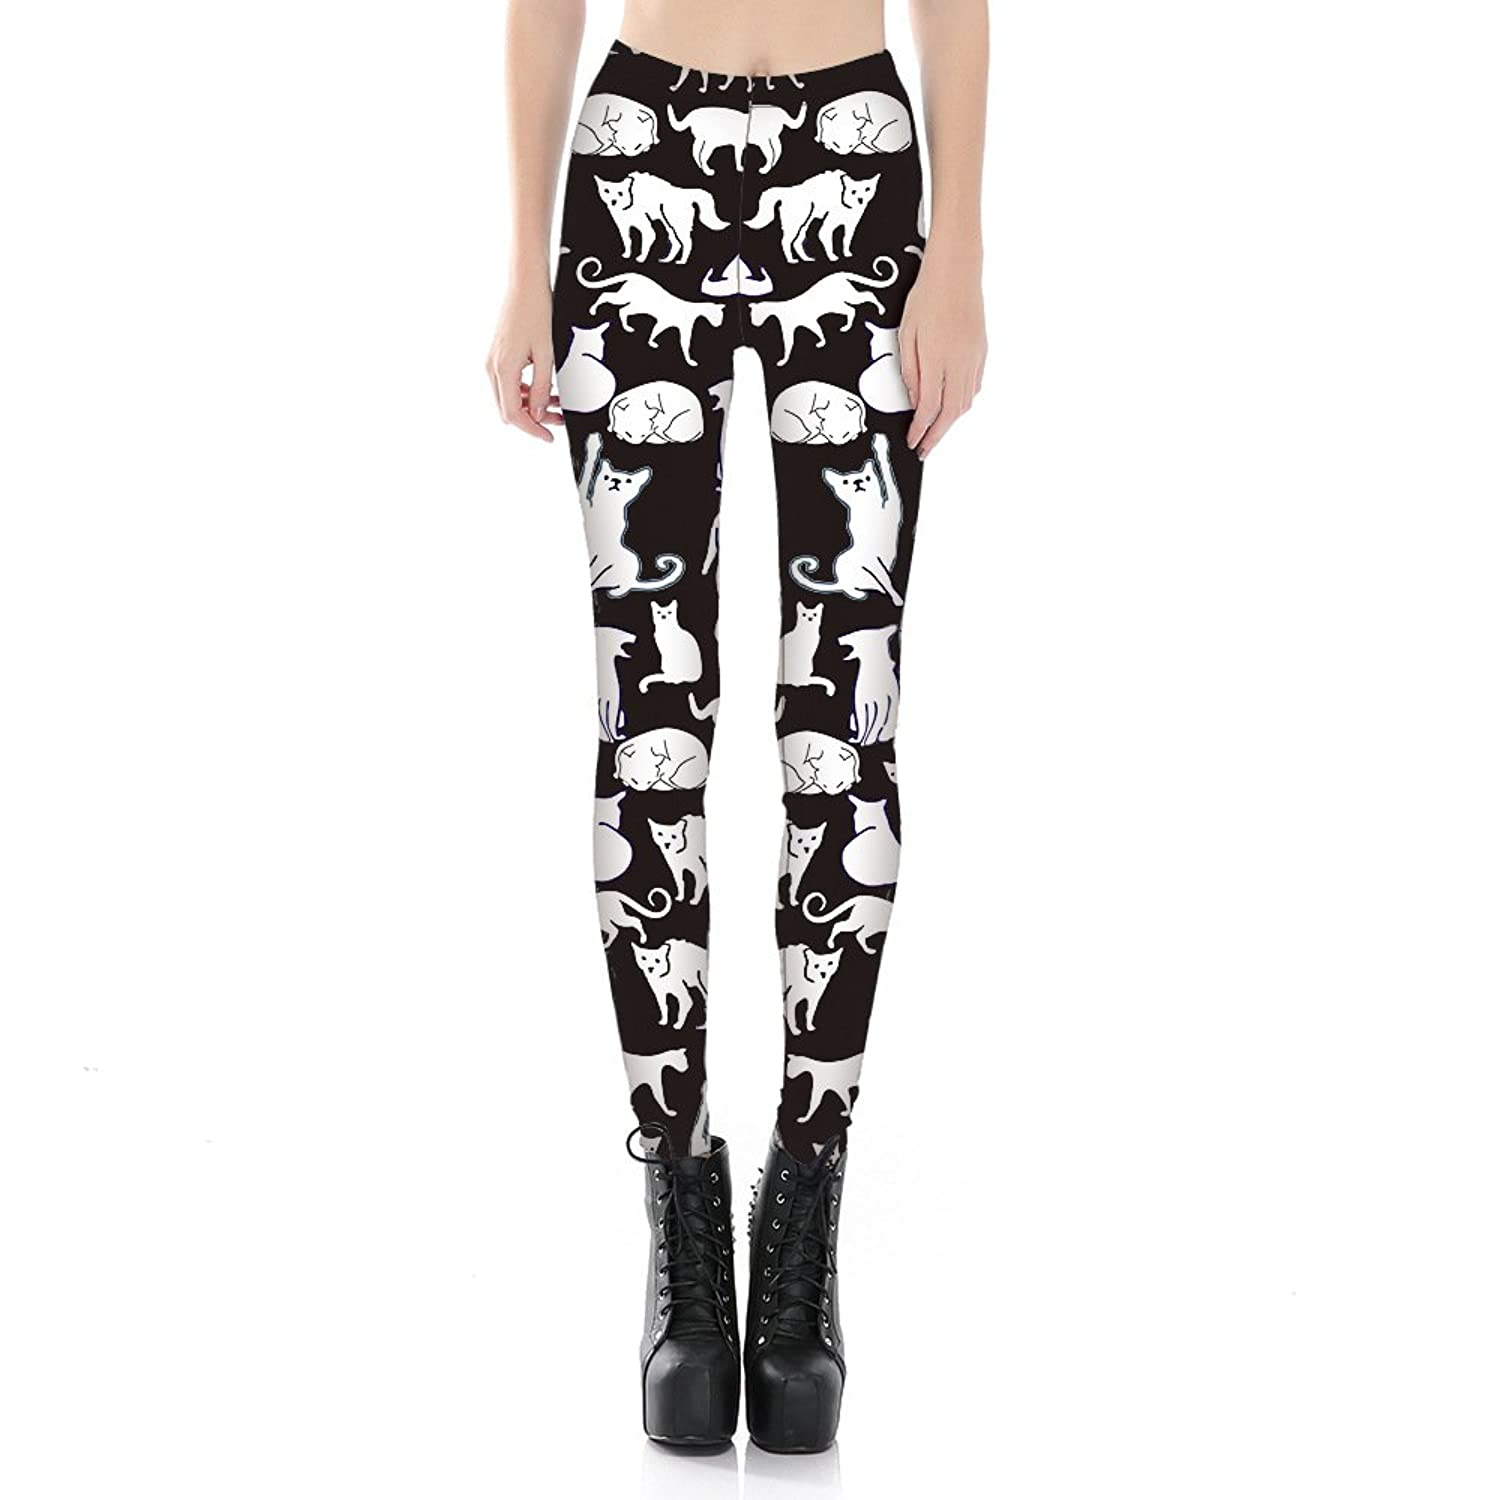 1d0cb67249 chic Leggings Depot Ultra Soft REGULAR and PLUS Popular Best Printed  Fashion Leggings (Black and